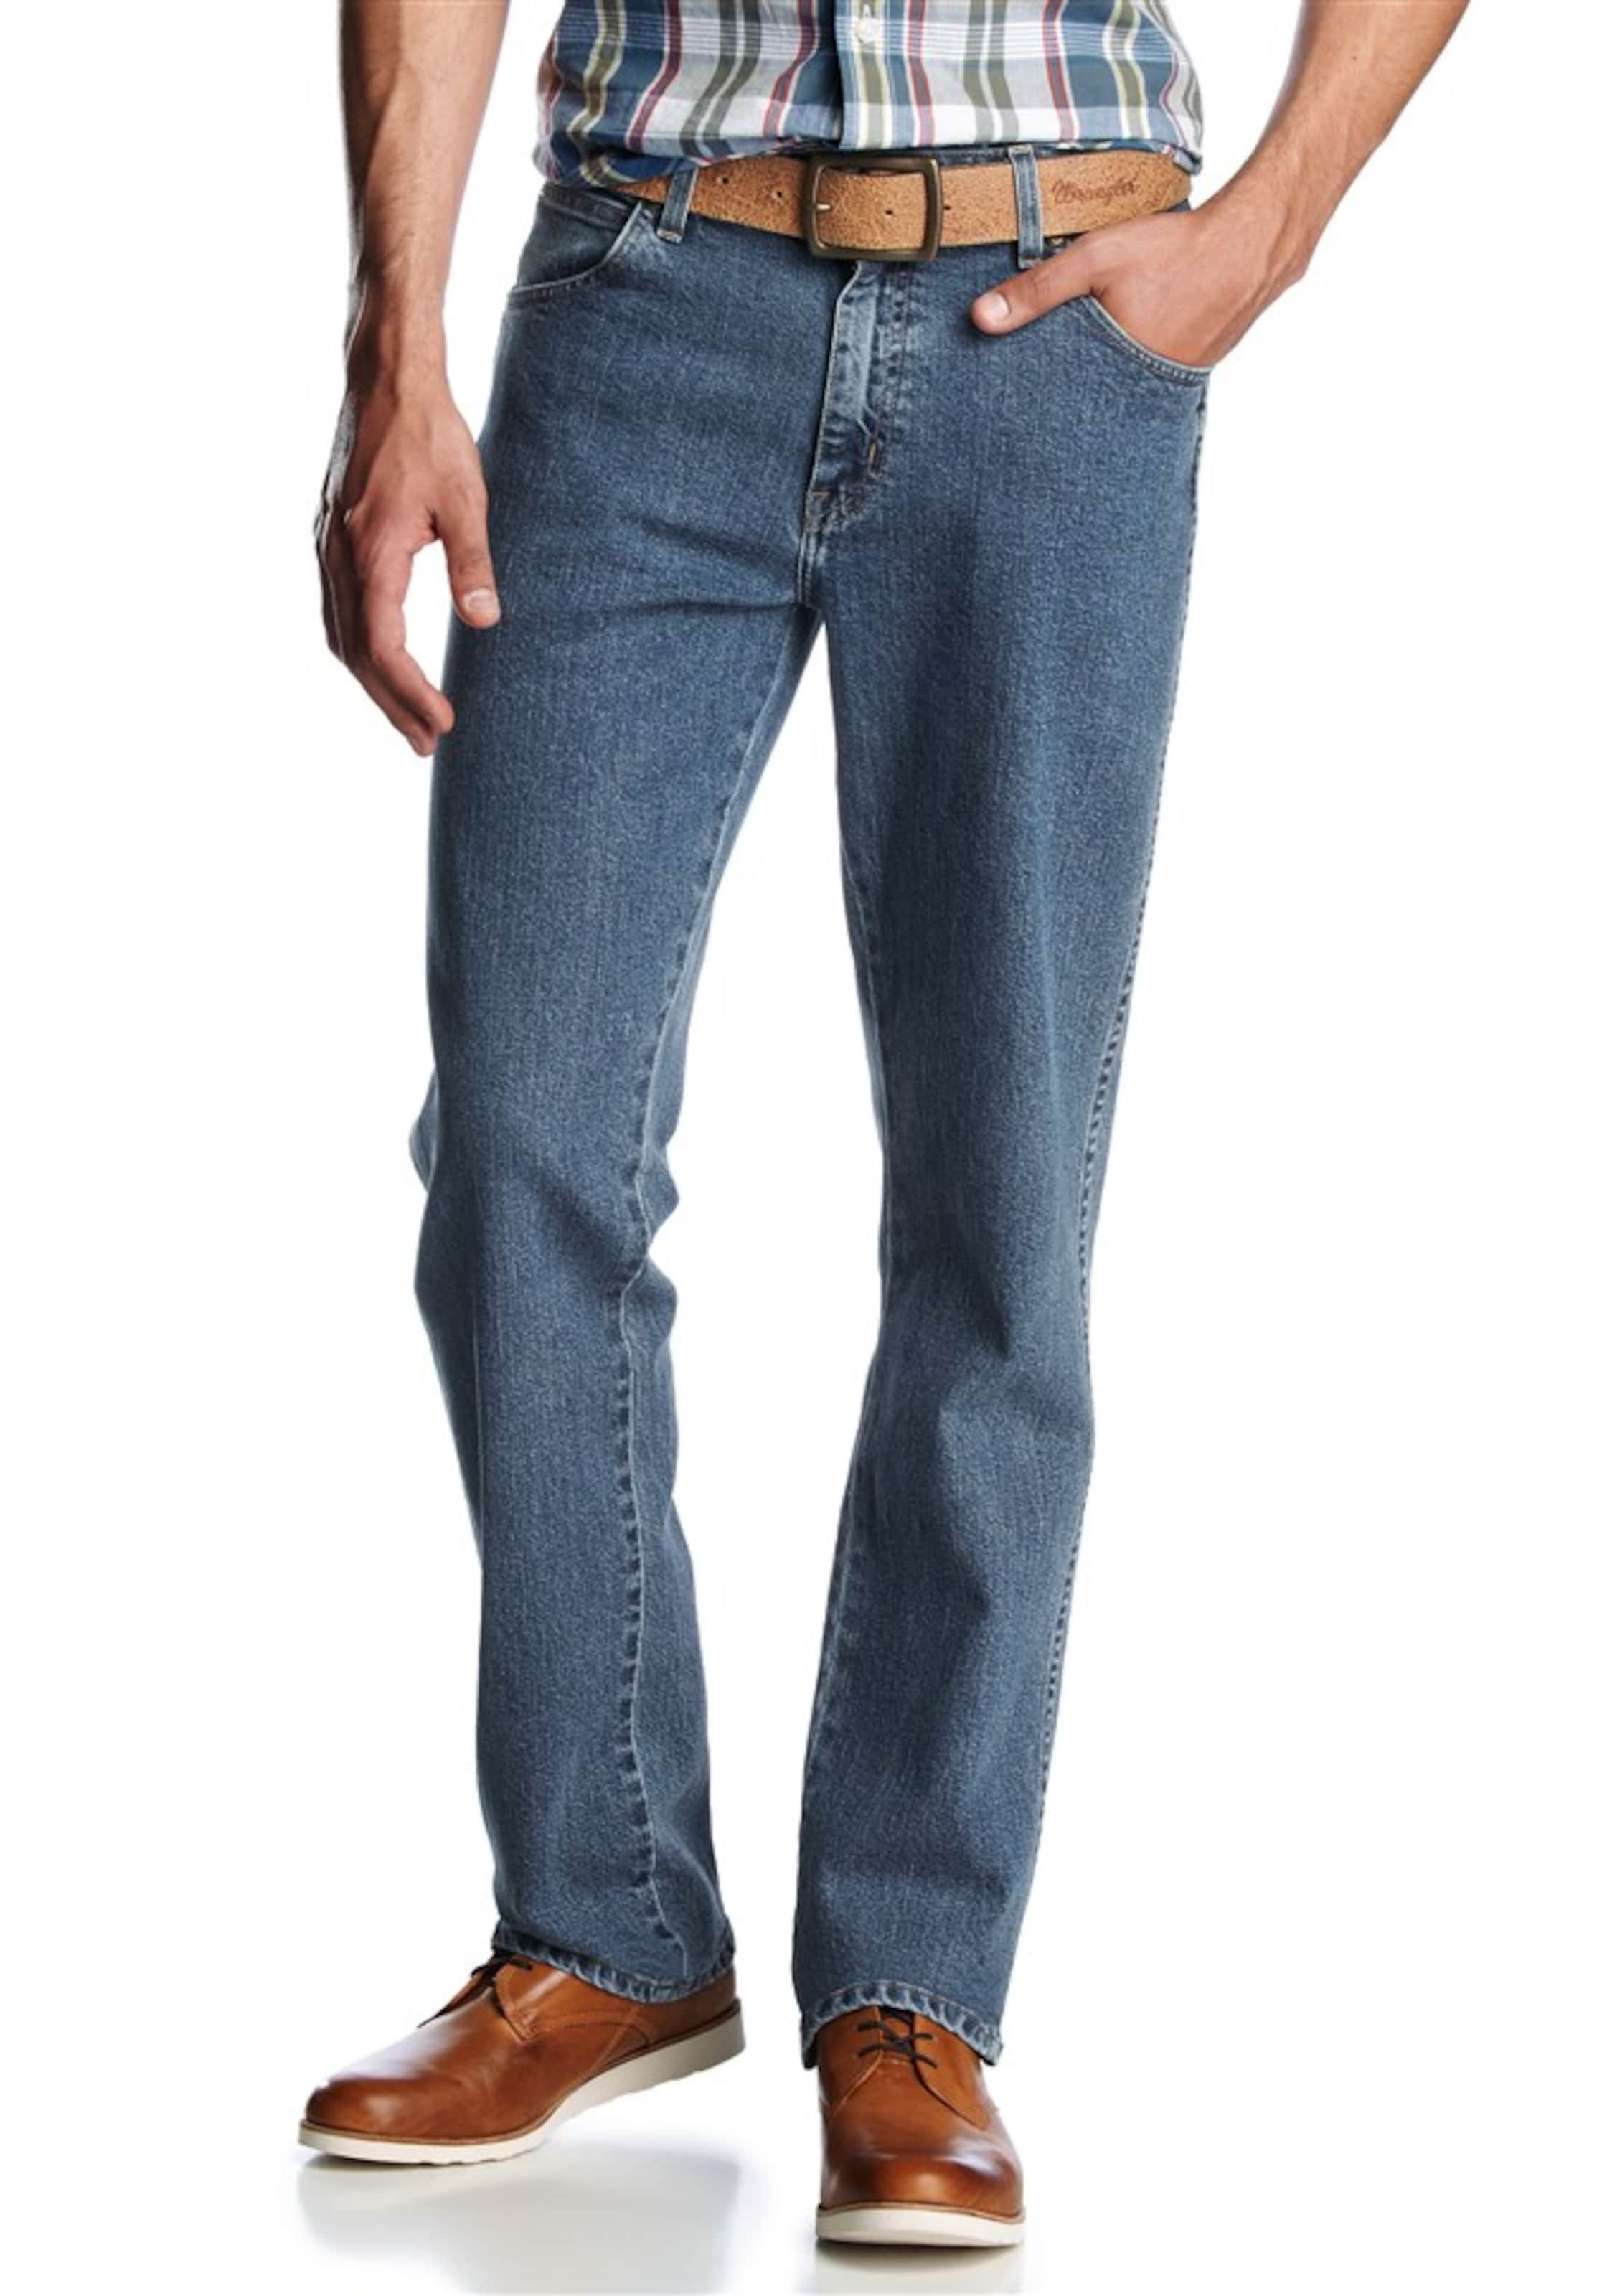 WRANGLER 5-Pocket-Jeans »Stretch« Billig Rabatt Authentisch Spielraum Sehr Billig xnGGwYRgB